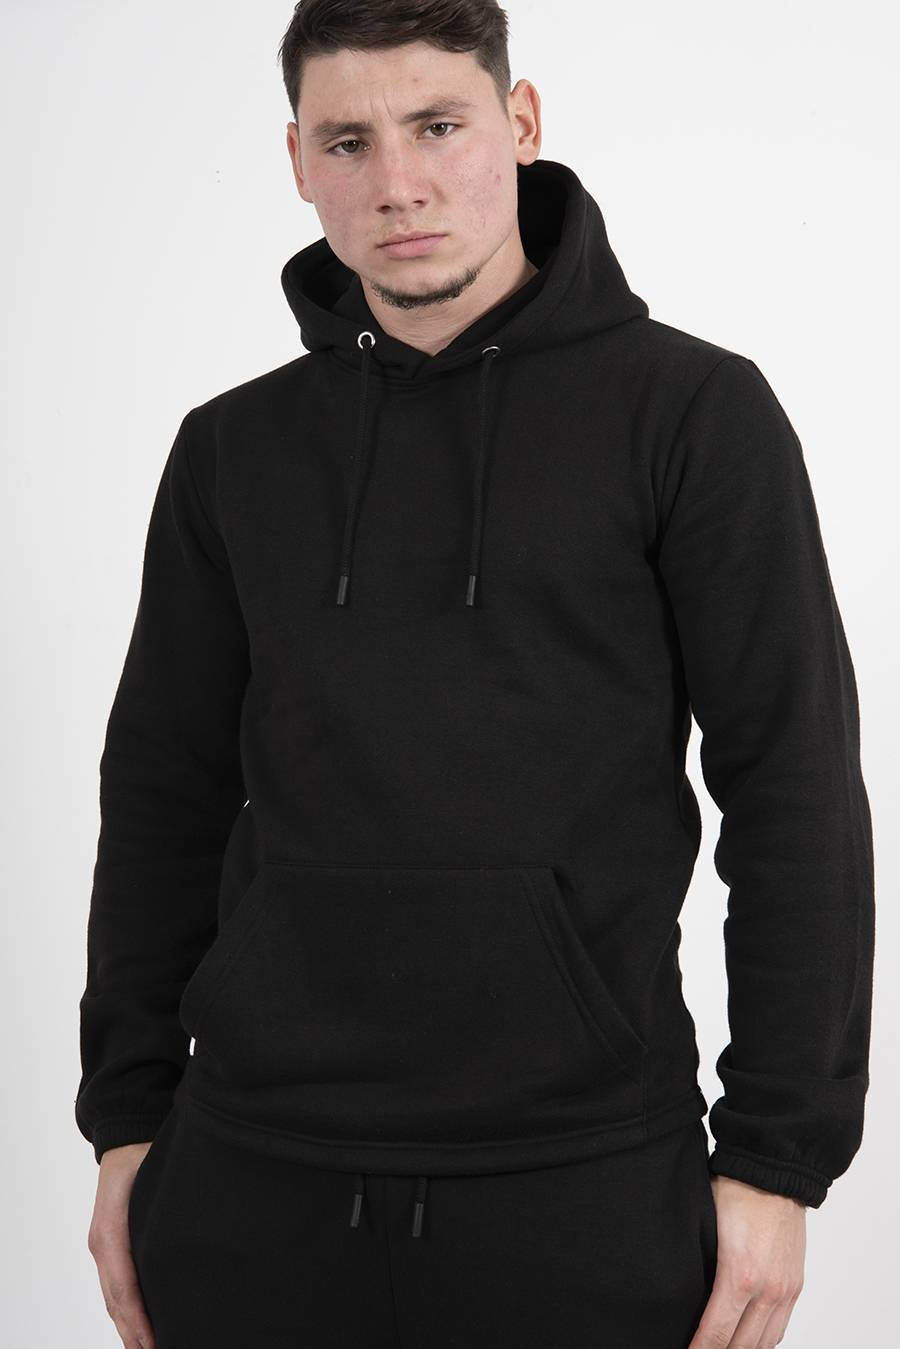 Black Pullover Hooded Tracksuit J5 Fashion